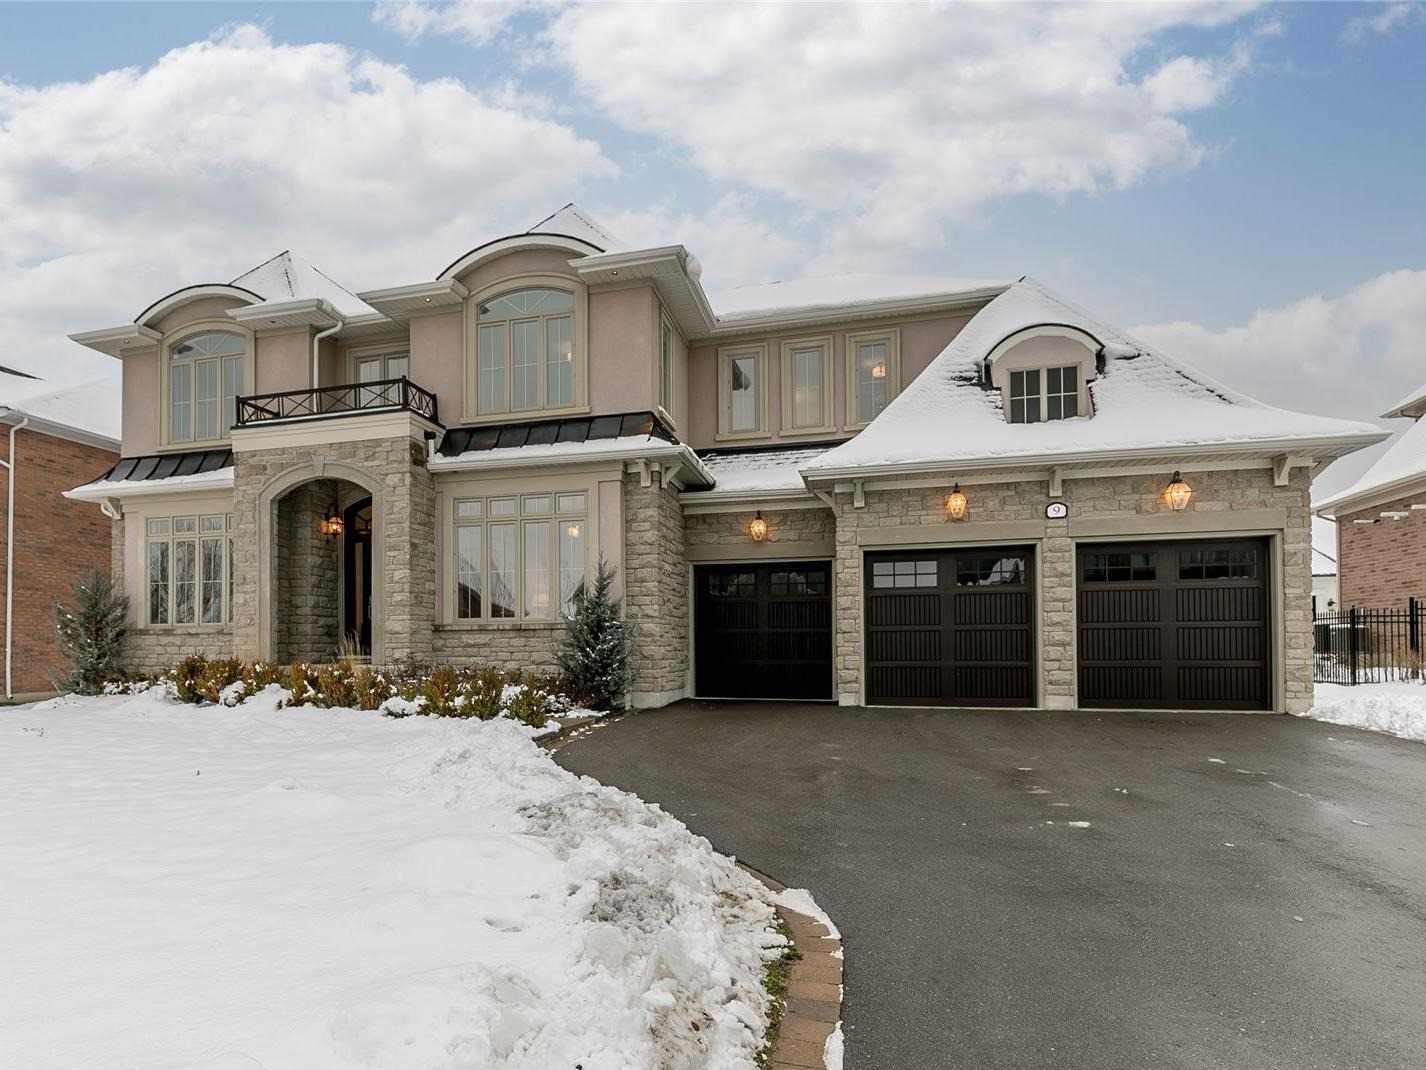 Main Photo: 9 Country Club Cres in Uxbridge: Rural Uxbridge Freehold for sale : MLS®# N5062220